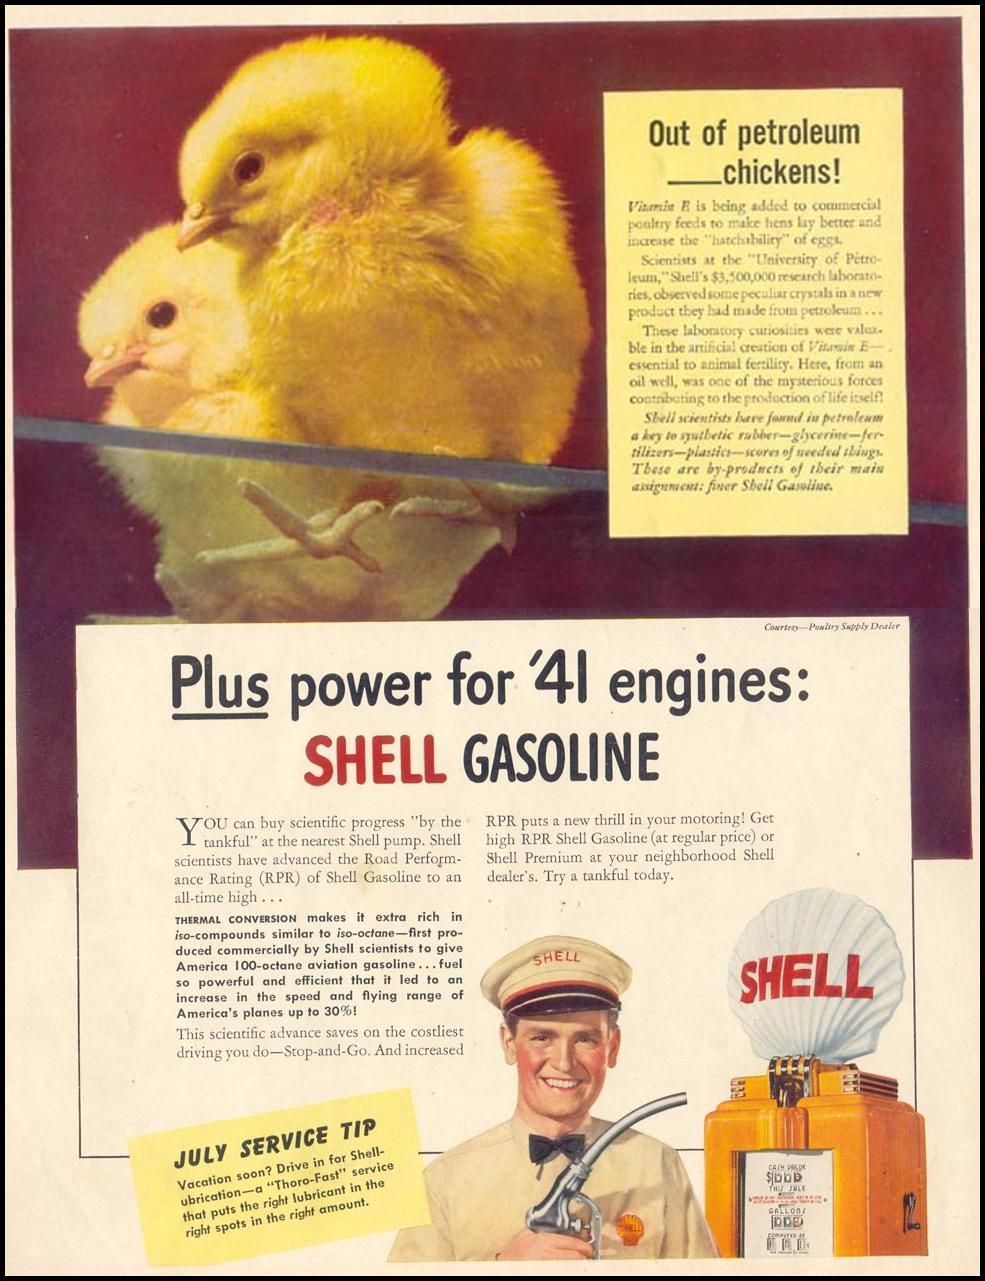 SHELL GASOLINE